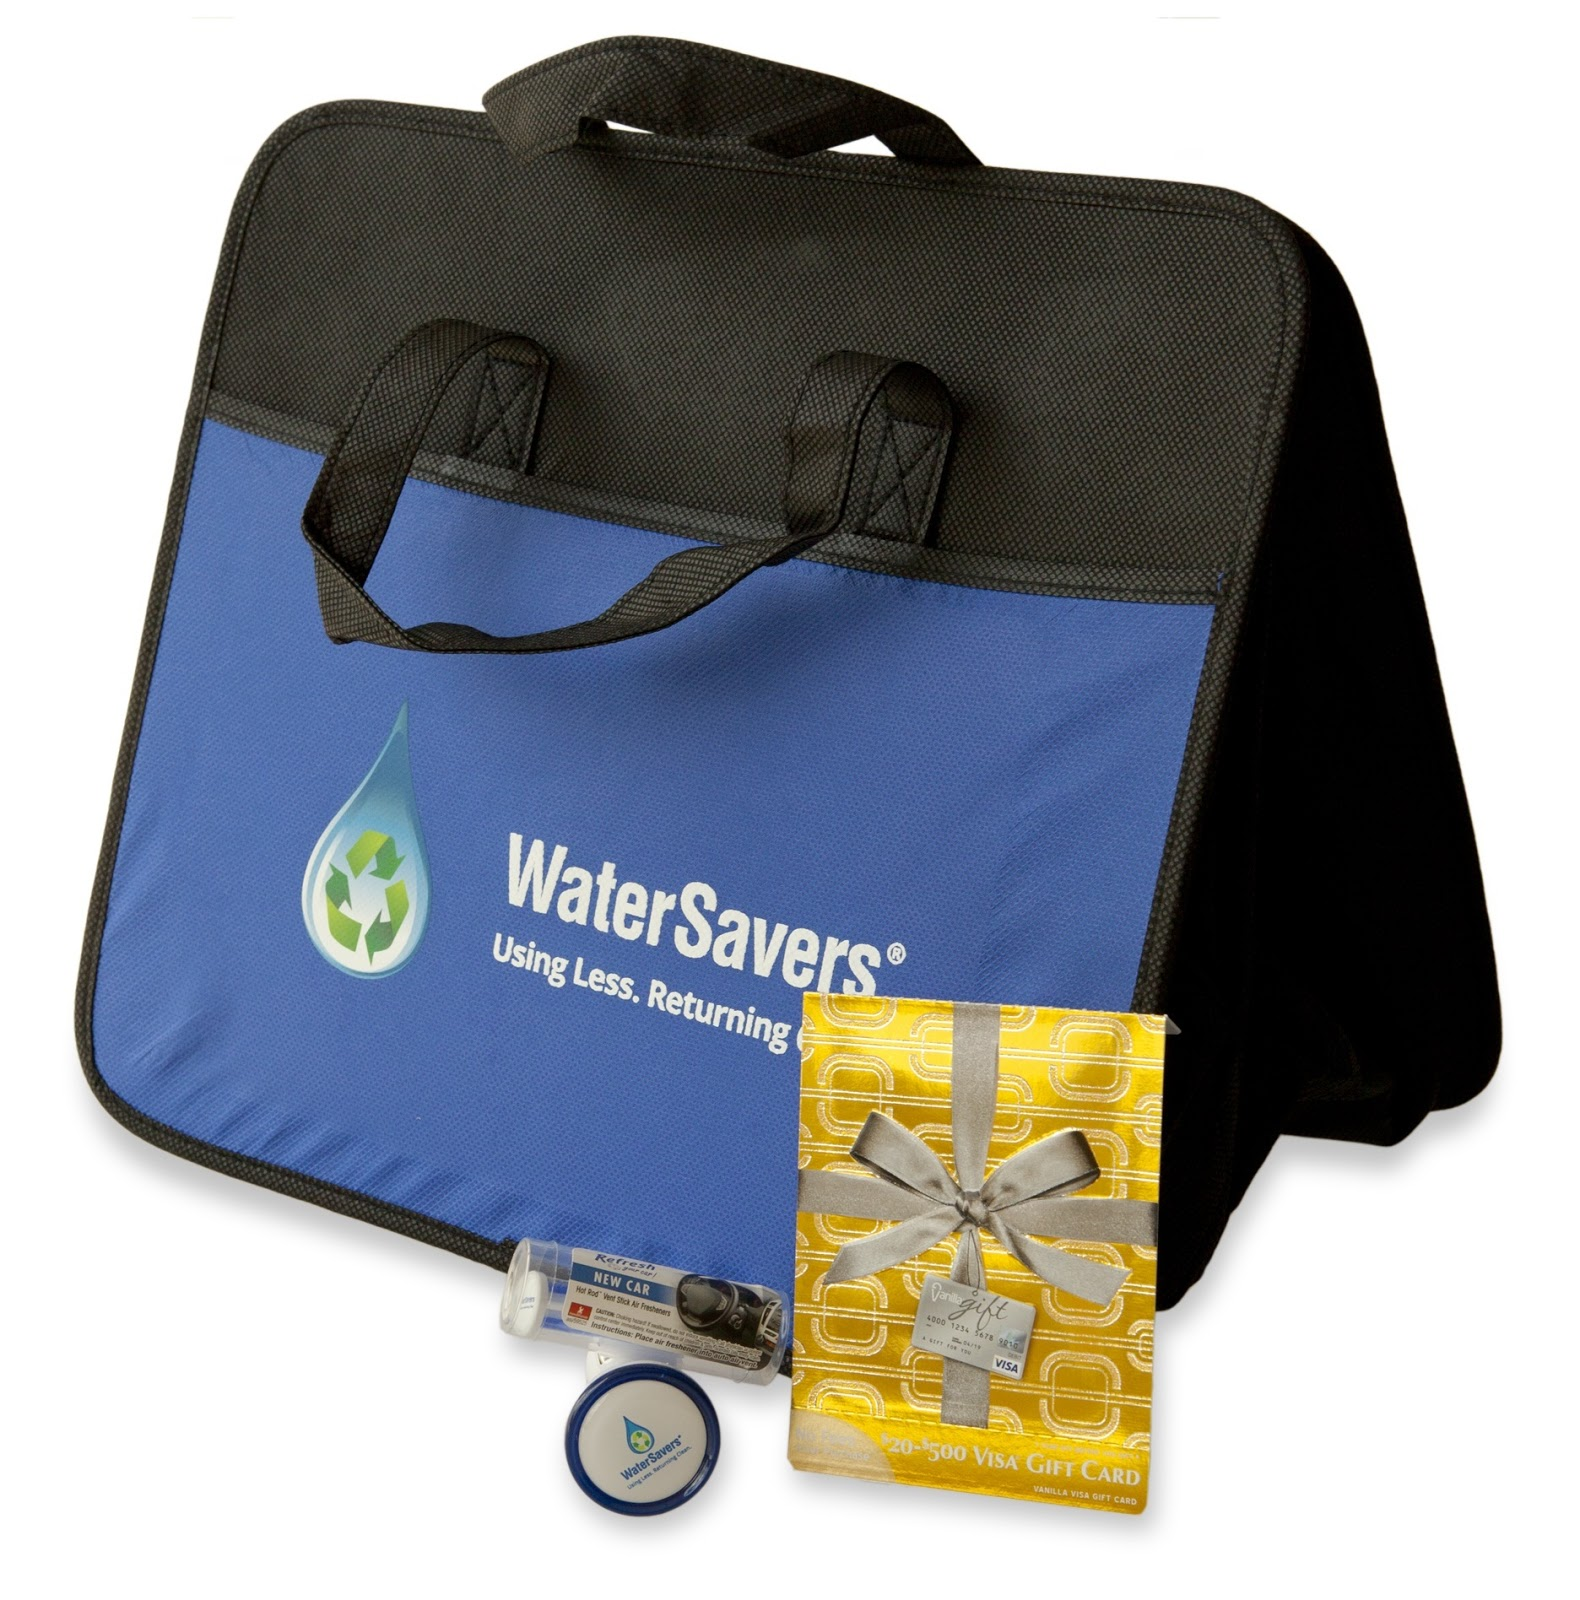 WaterSavers Summer Prize Package